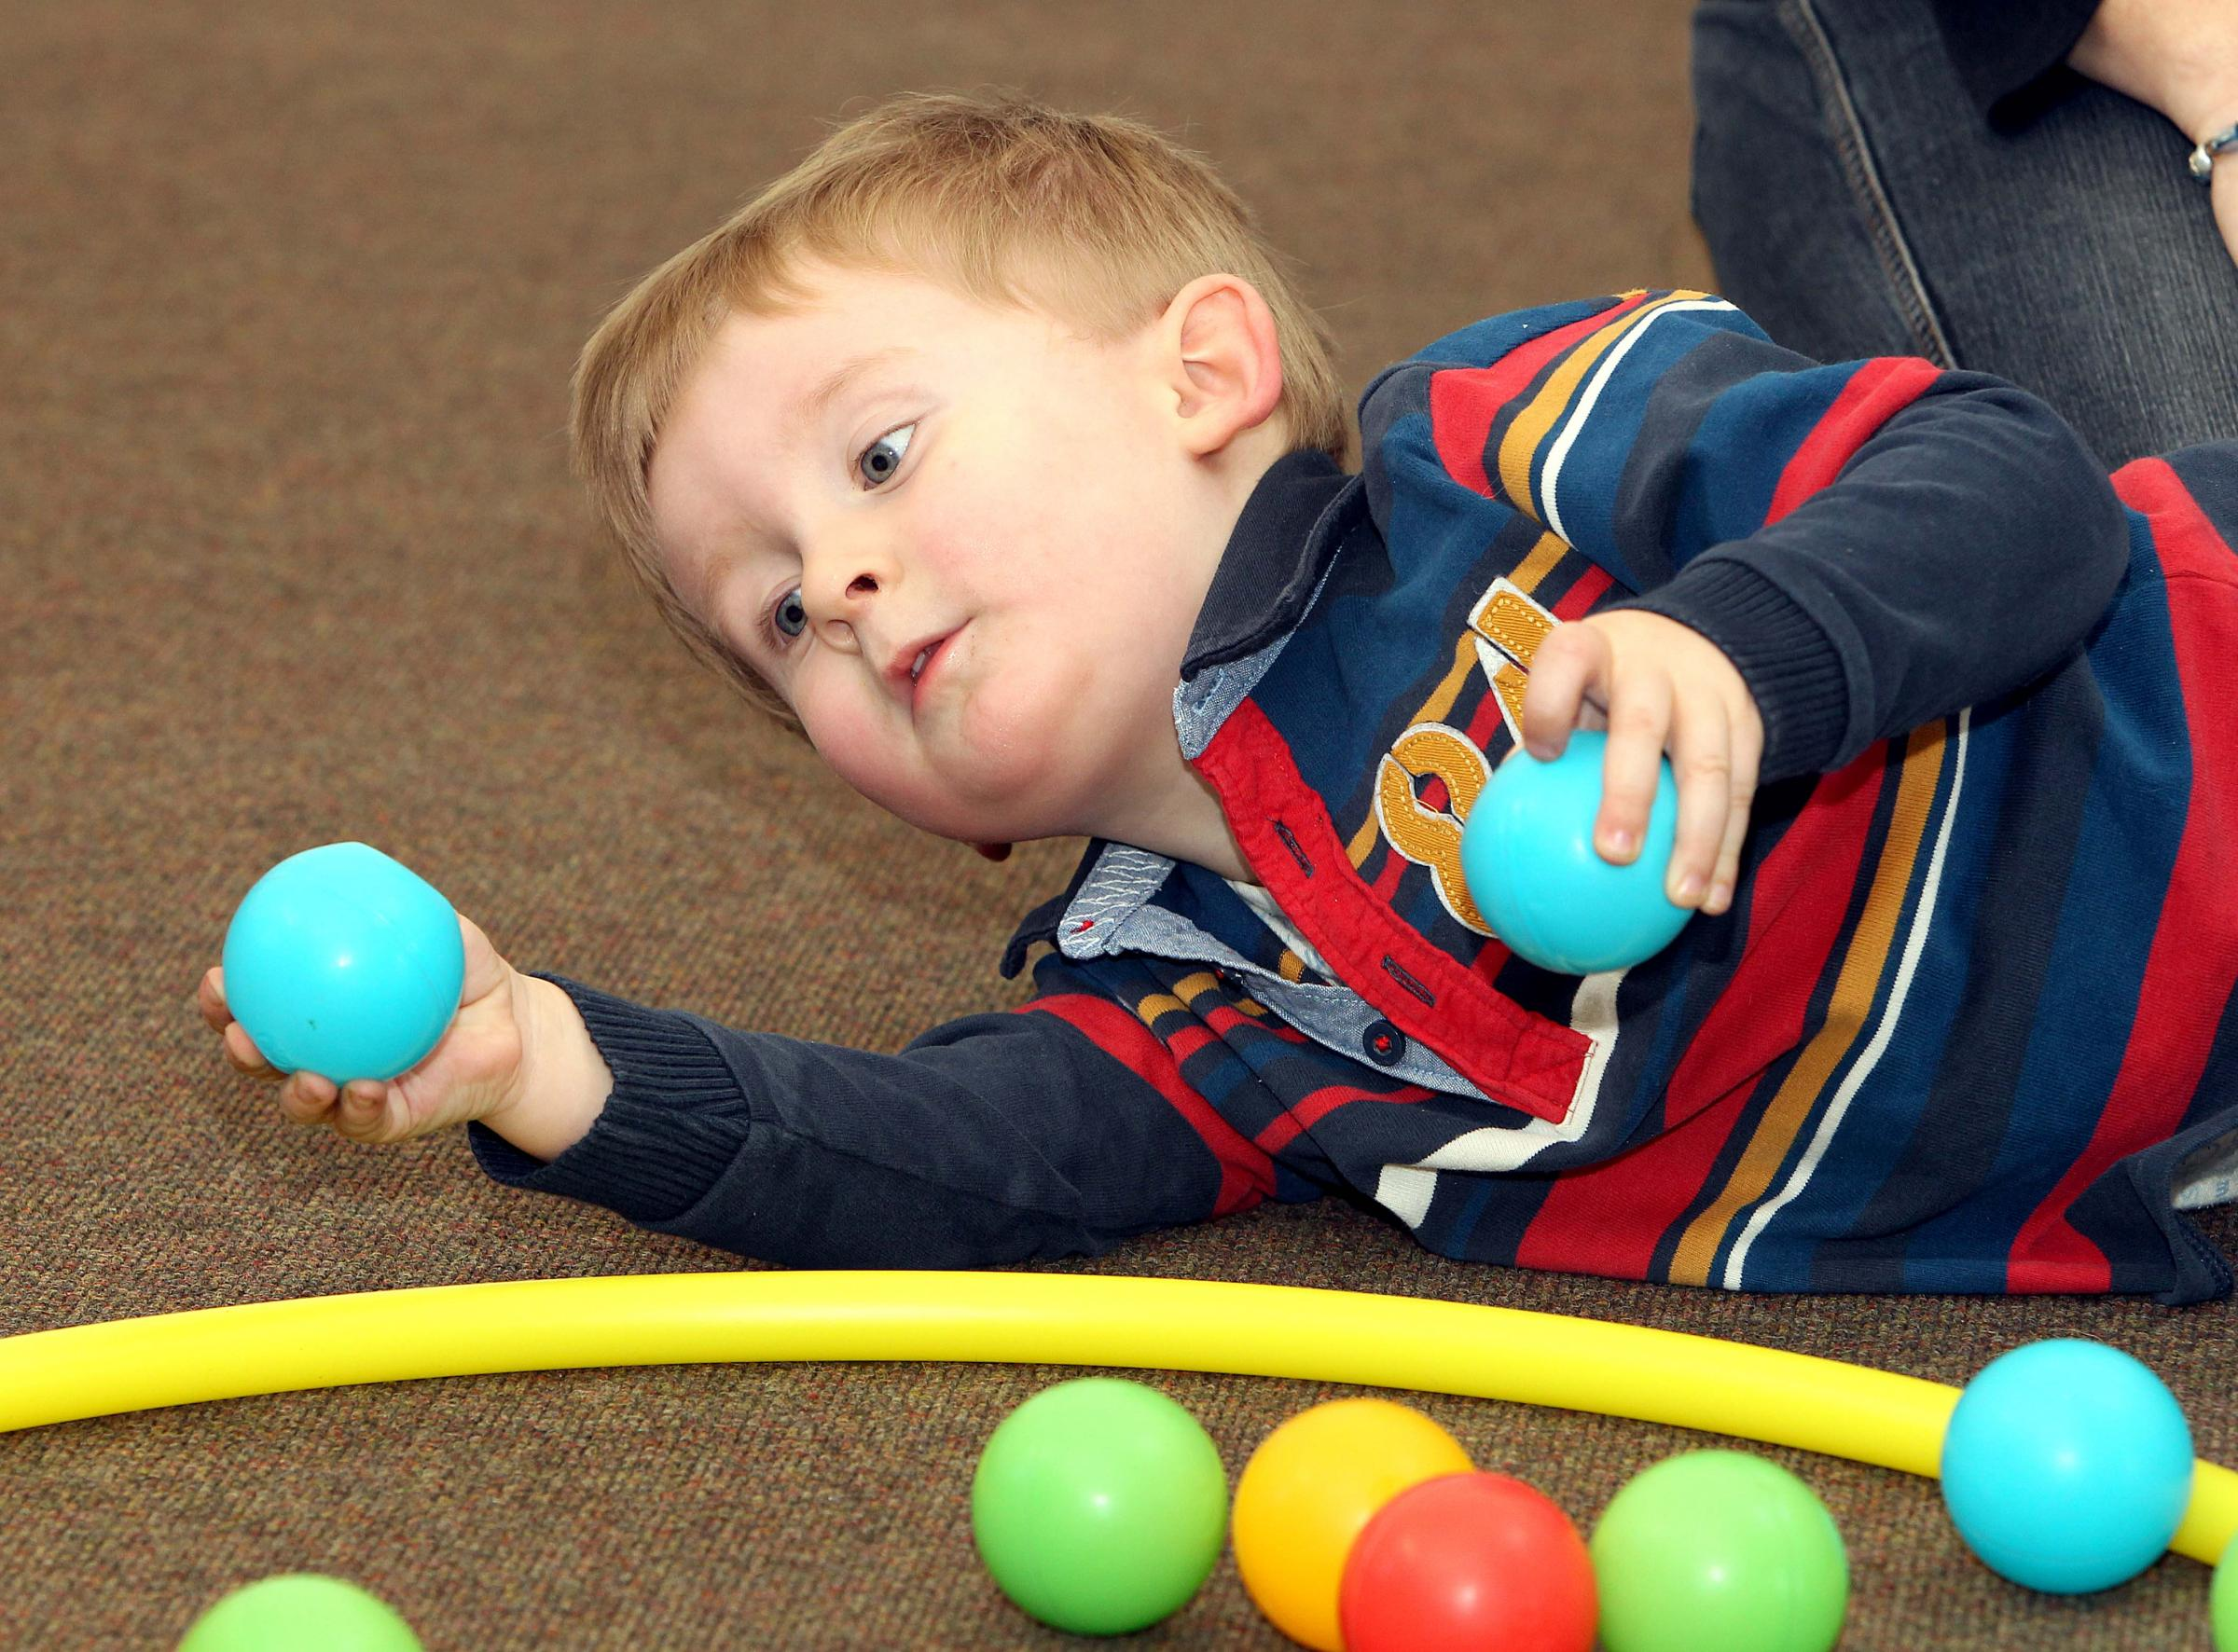 Jamie Morrison, two, takes part in one of the activities.